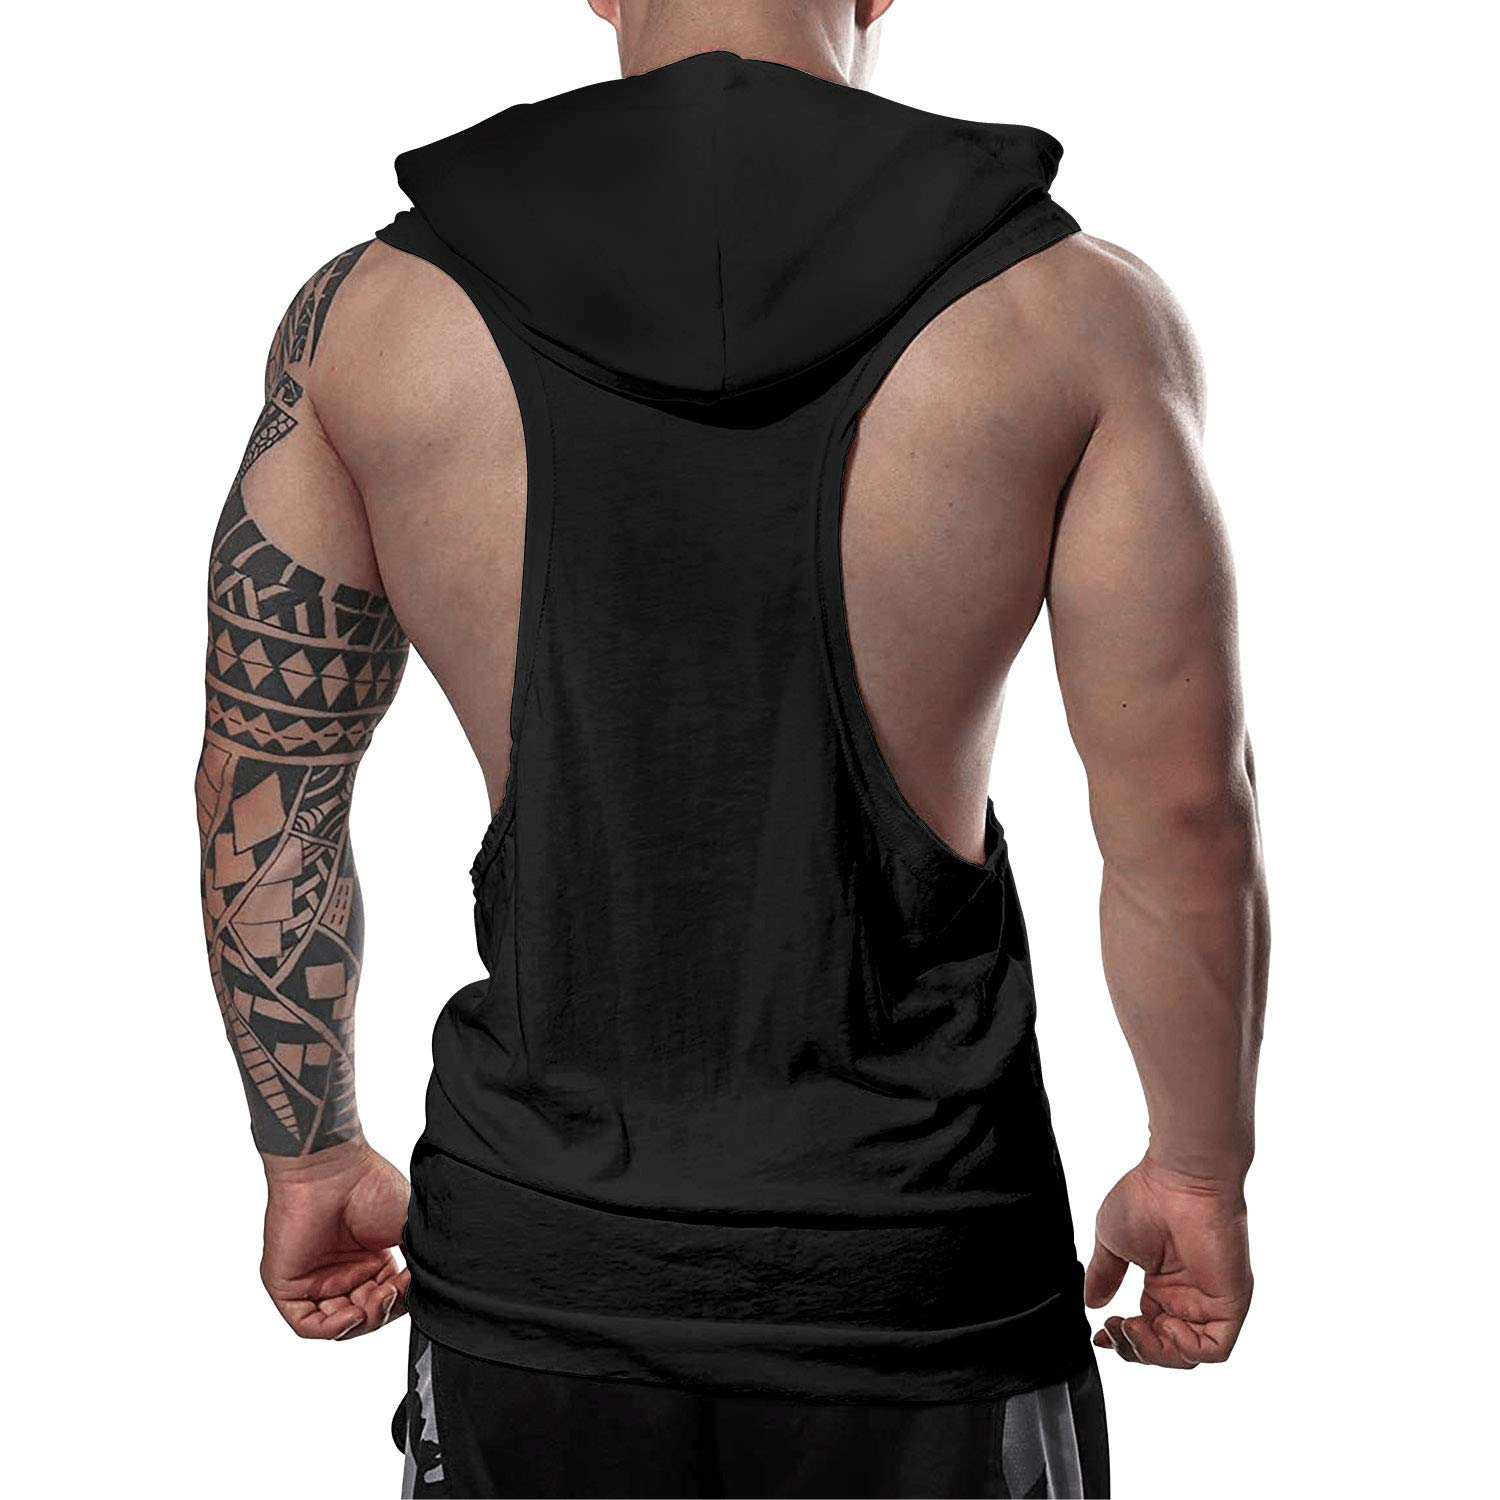 Workout Hooded Tank Tops Rainbow Unicorn and Dinosaur Men Slim Muscle Sleeveless Hooded Shirt with Pocket Cool and Muscle Cut